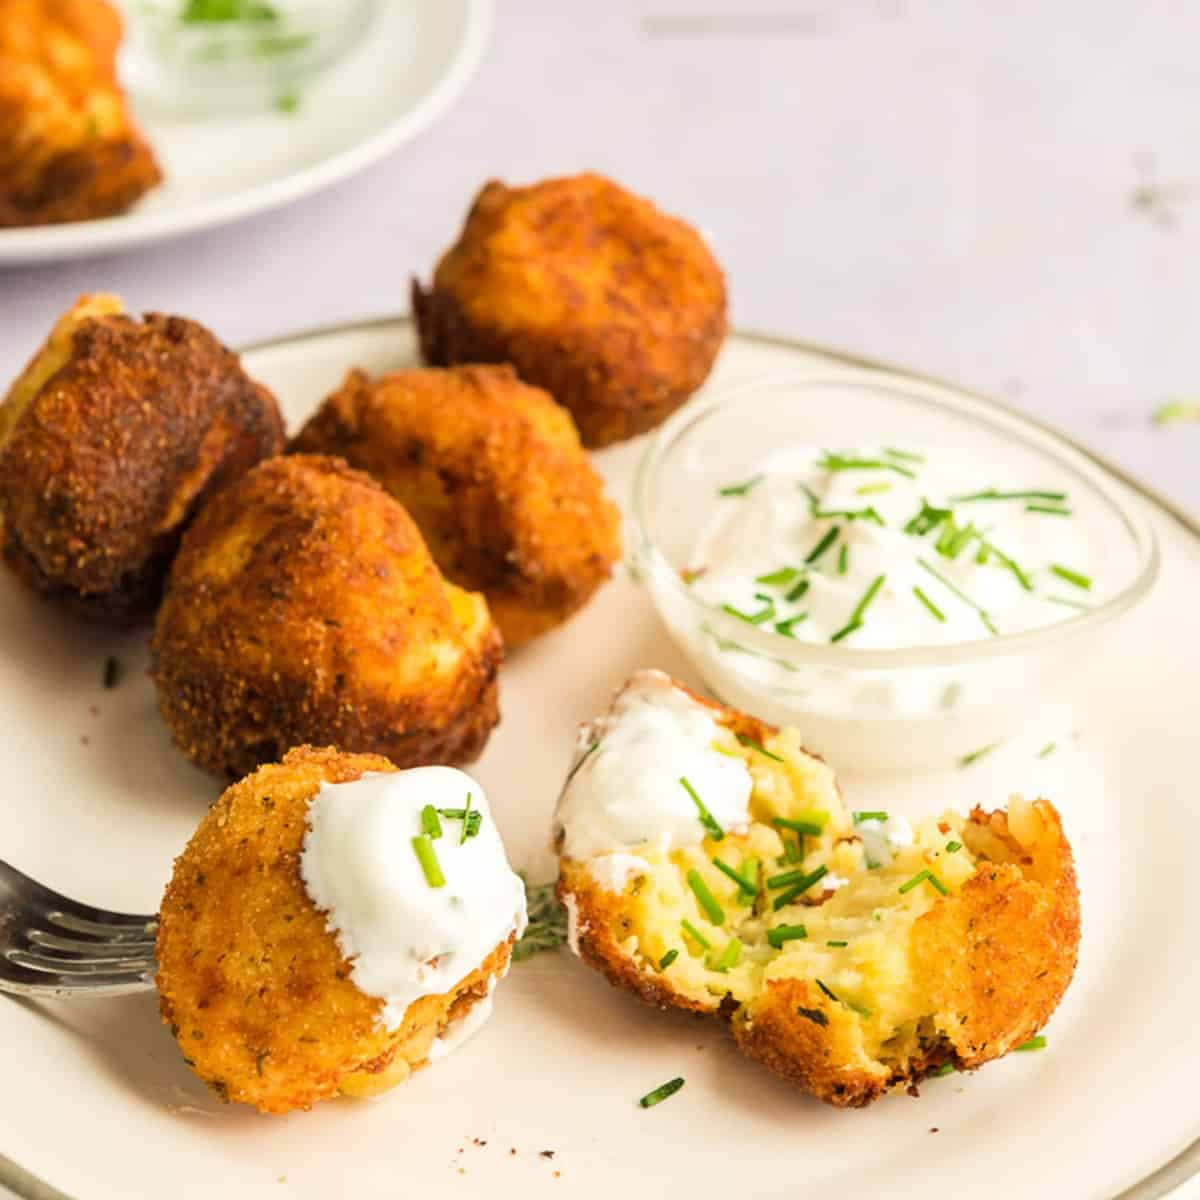 Plate of mashed potato croquettes with sour cream and chves.